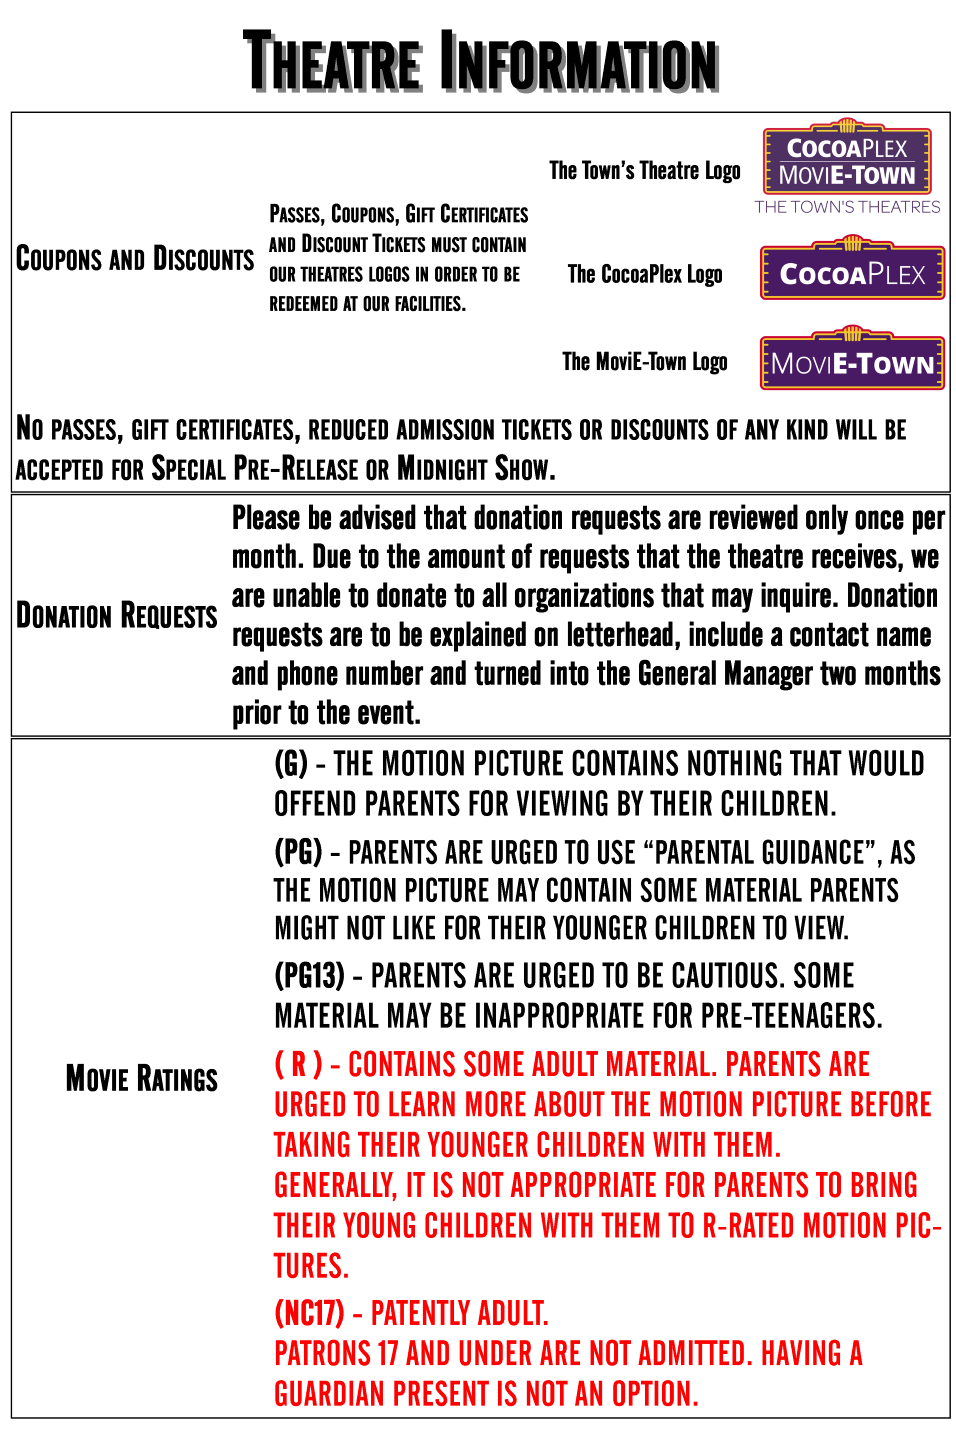 Theatre Information.png